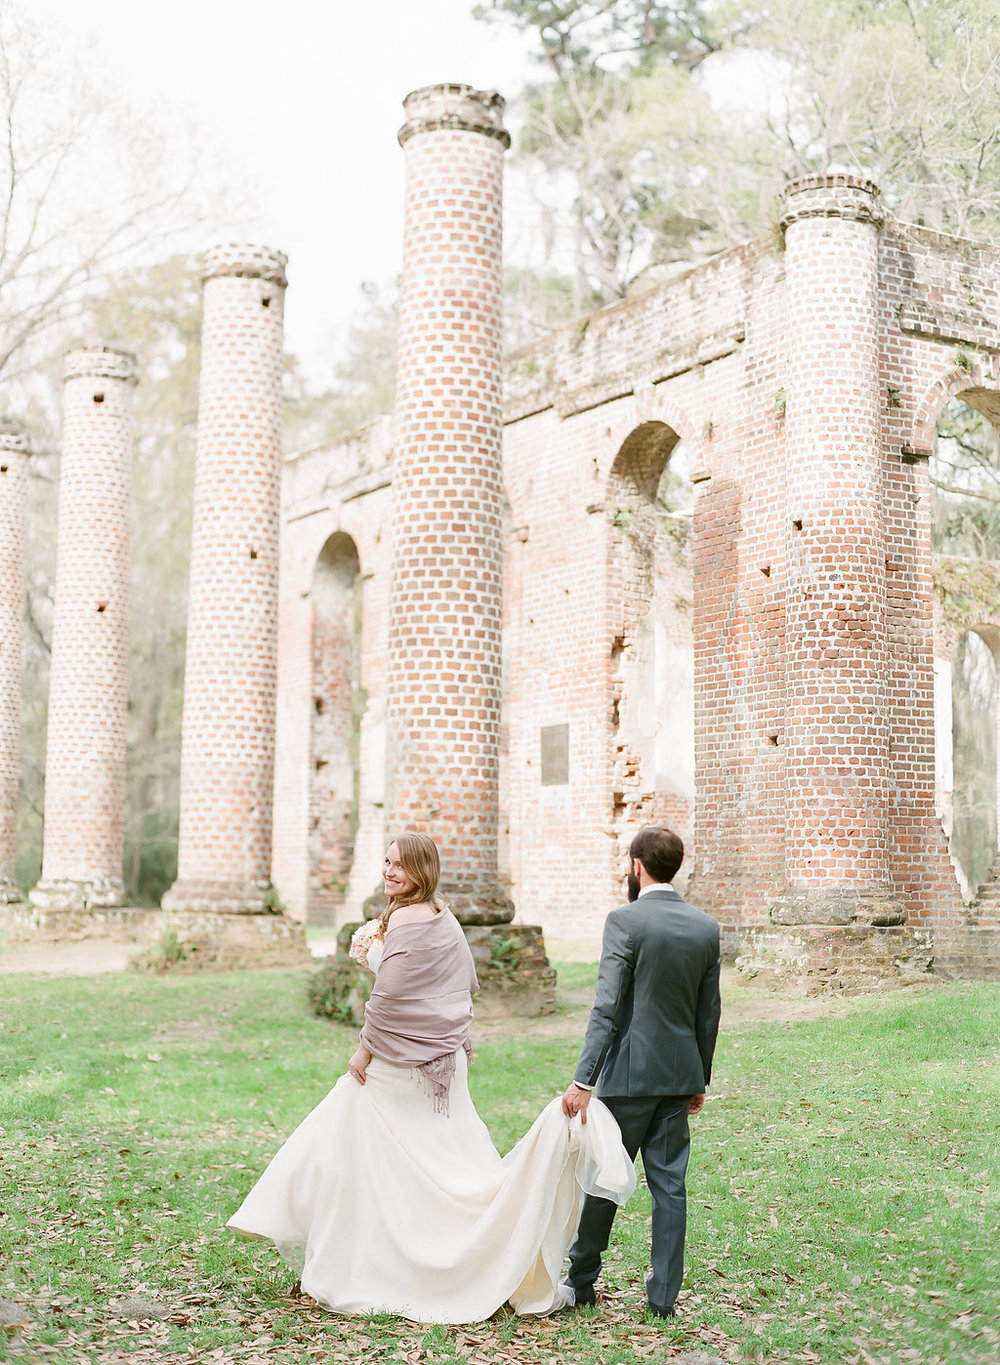 nancy-matt-wedding-whitfield-chapel-wedding-ivory-and-beau-bridal-boutique-the-happy-bloom-savannah-weddings-savannah-wedding-planner-savannah-bridal-boutique-savannah-florist-savannah-bridal-southern-wedding-old-sheldon-ruins-4.jpg